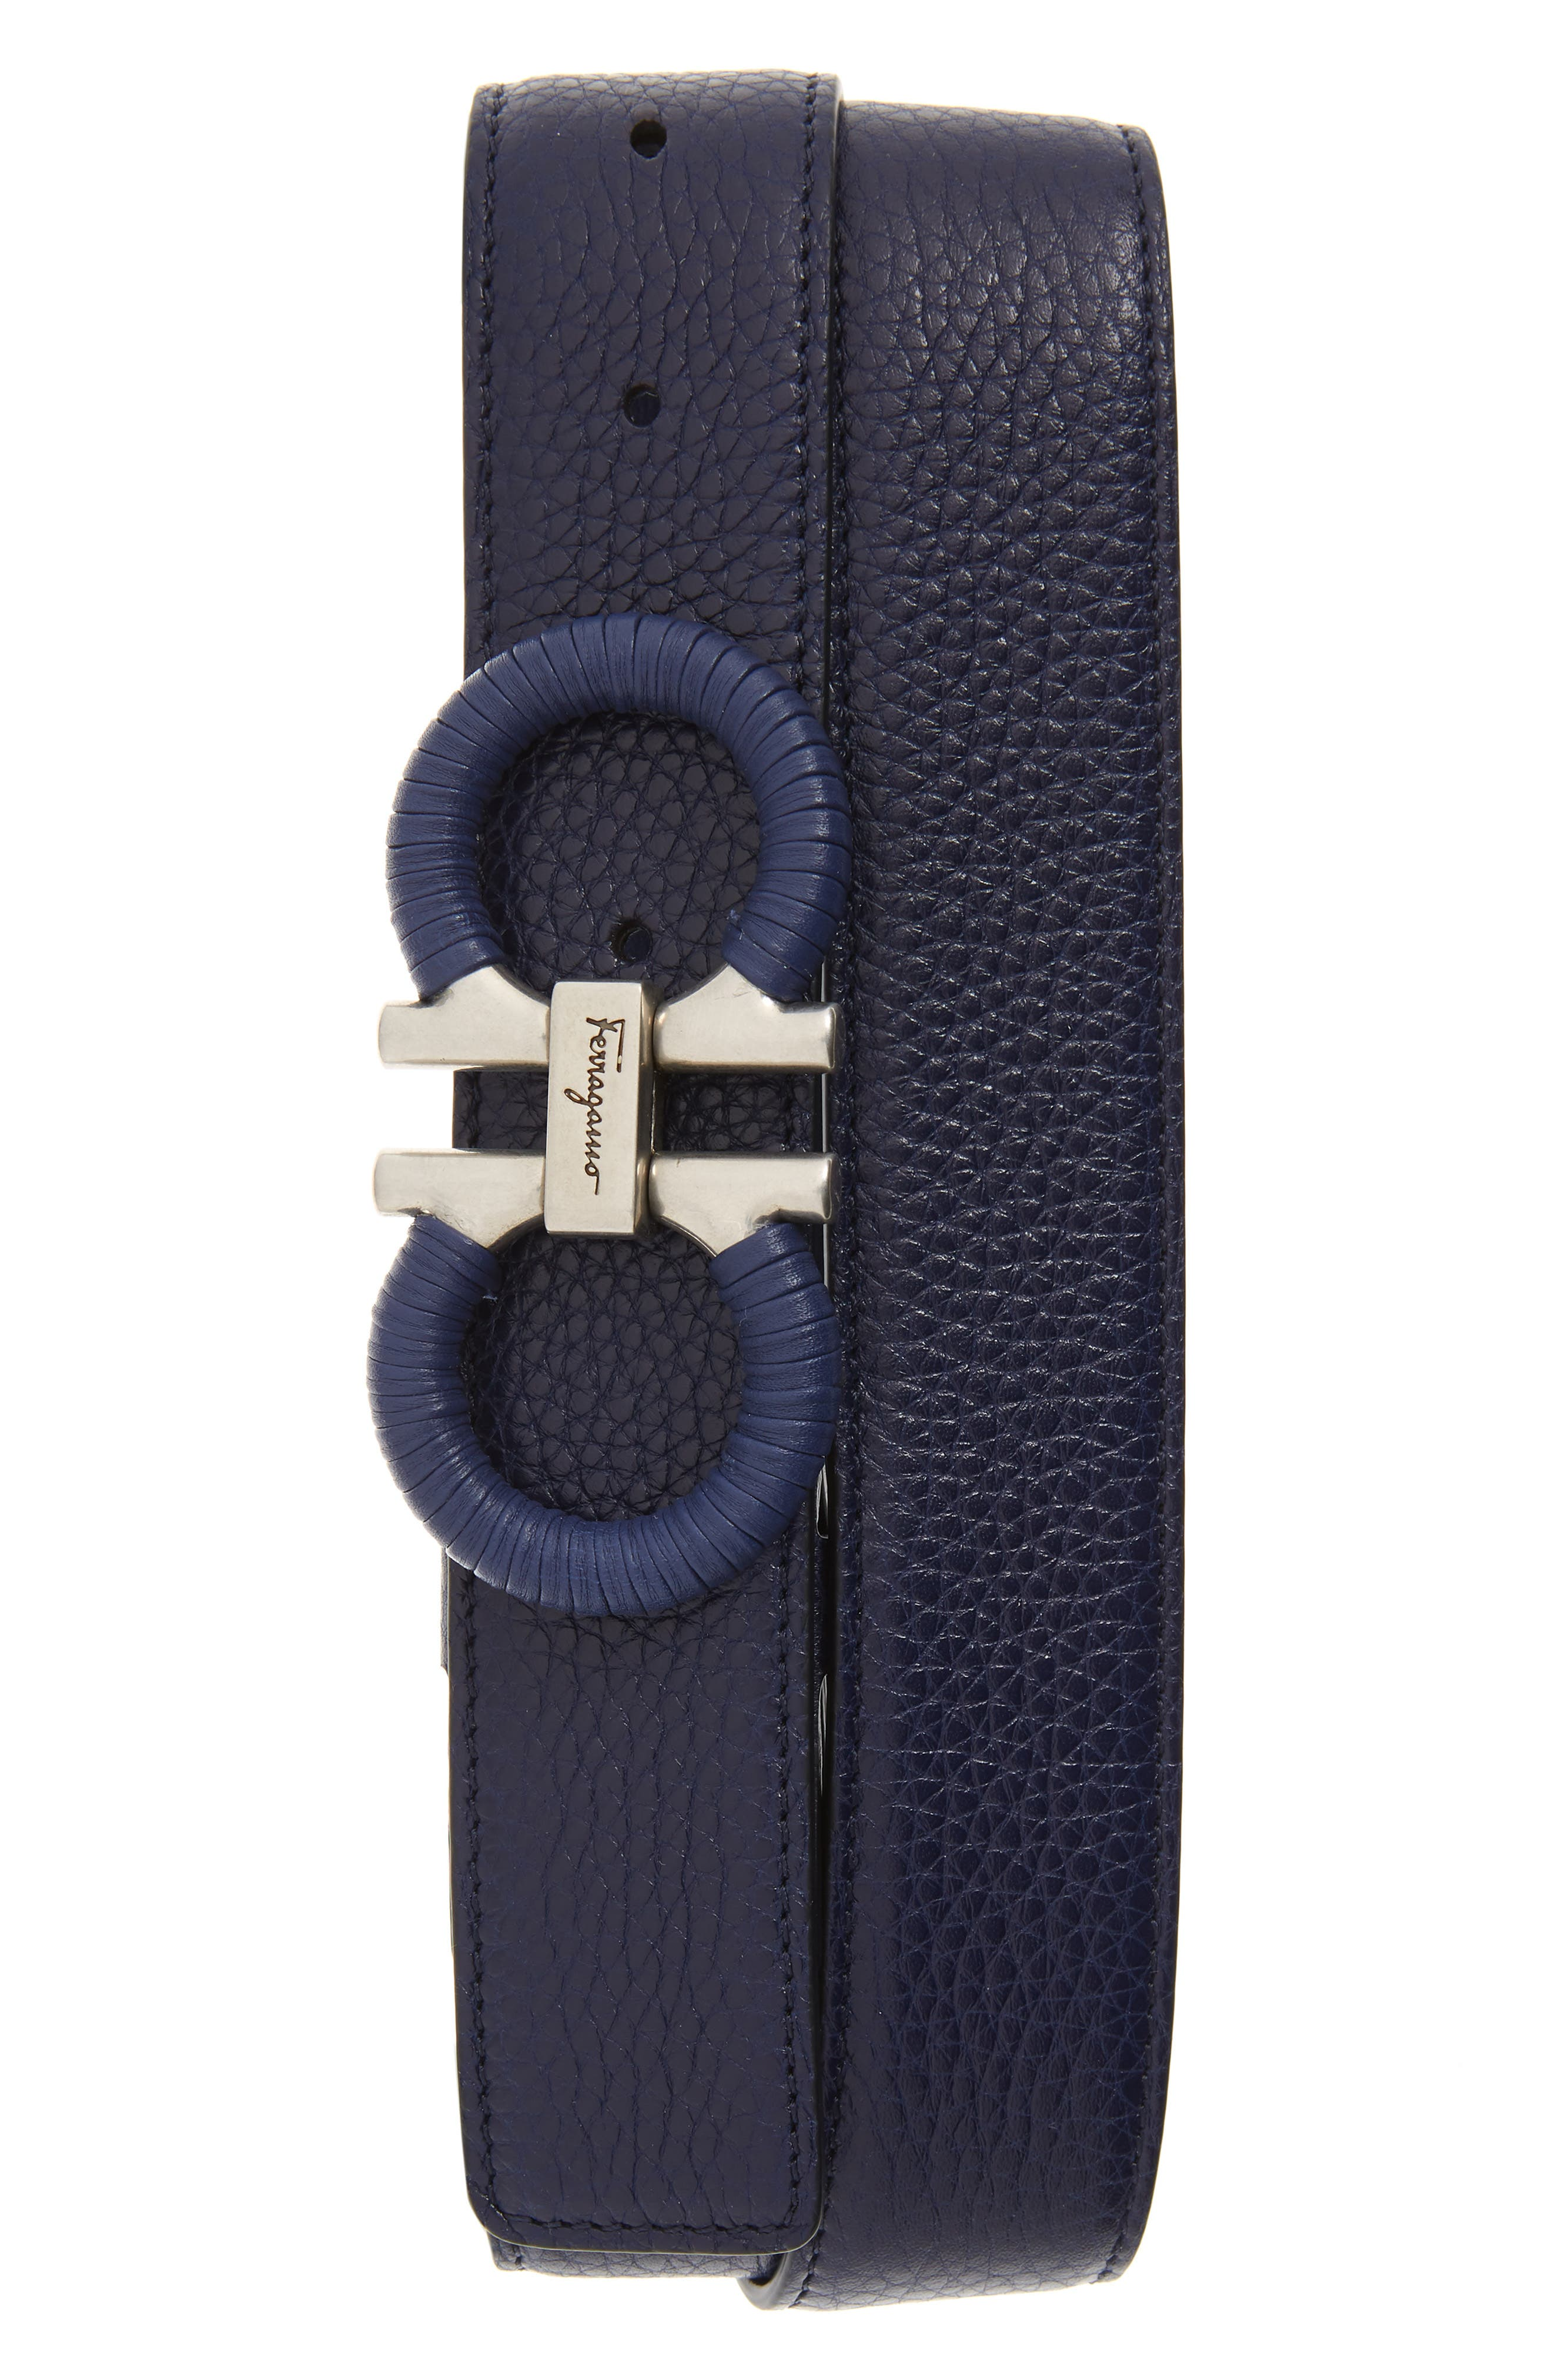 SALVATORE FERRAGAMO Textured & Smooth Leather Belt, Main, color, CADET BLUE